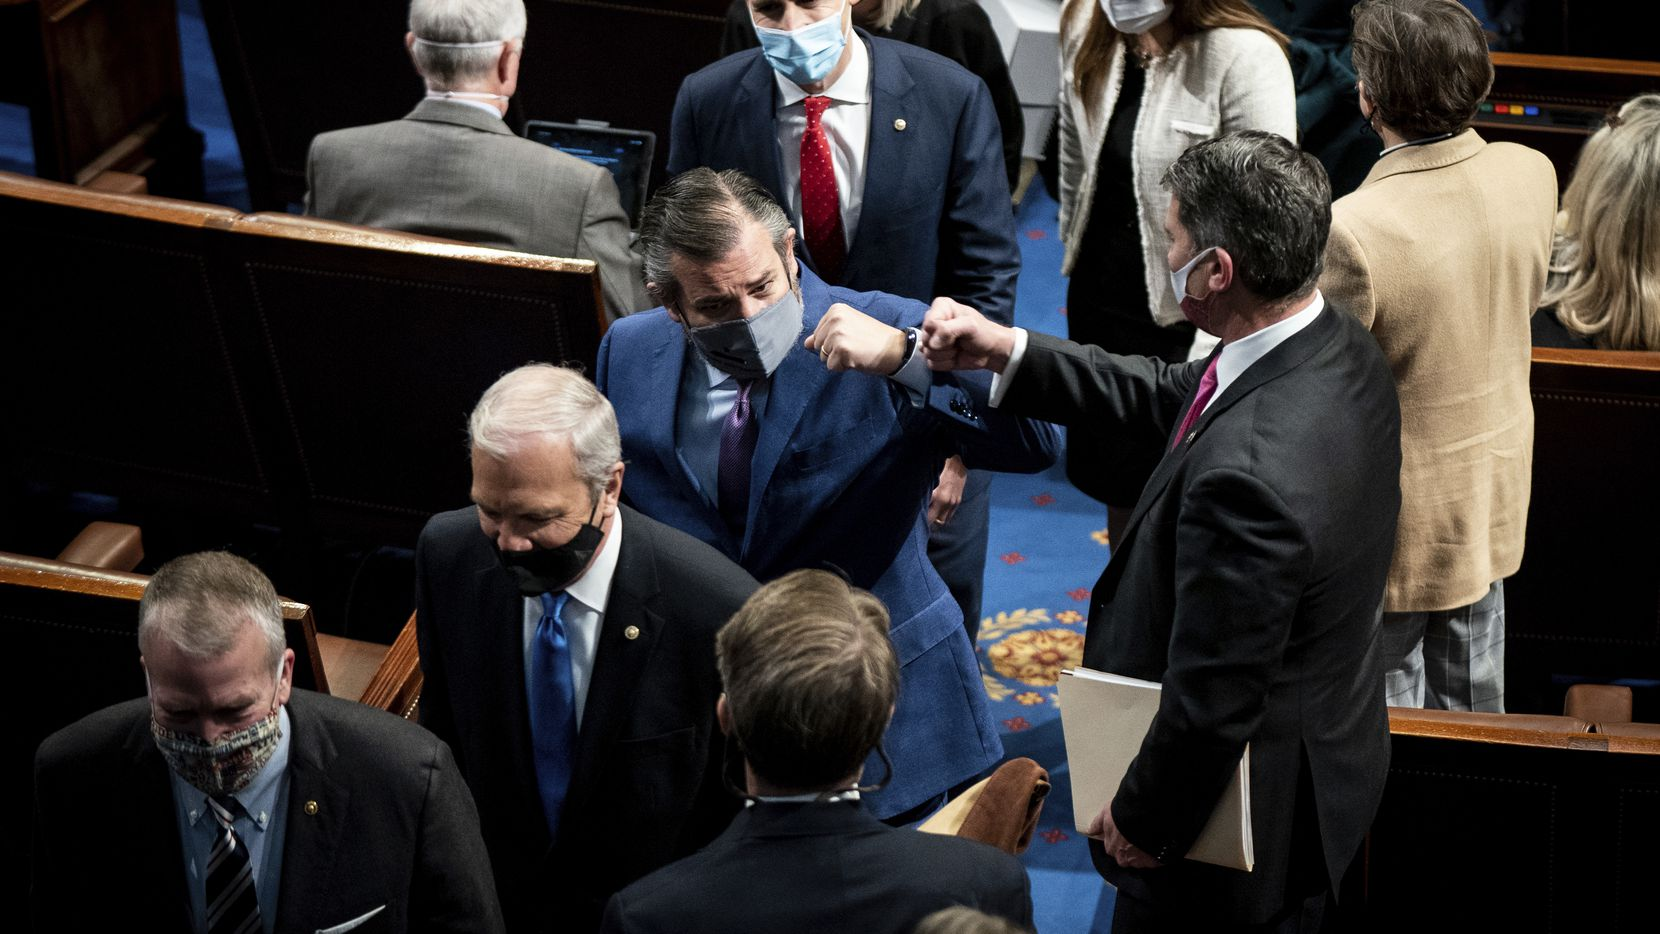 Sen. Ted Cruz, R-Texas, fist bumps with a House member as he leaves as a joint session of the House and Senate, as Congress convened to confirm the Electoral College votes cast in November's election on Jan. 6, 2021.